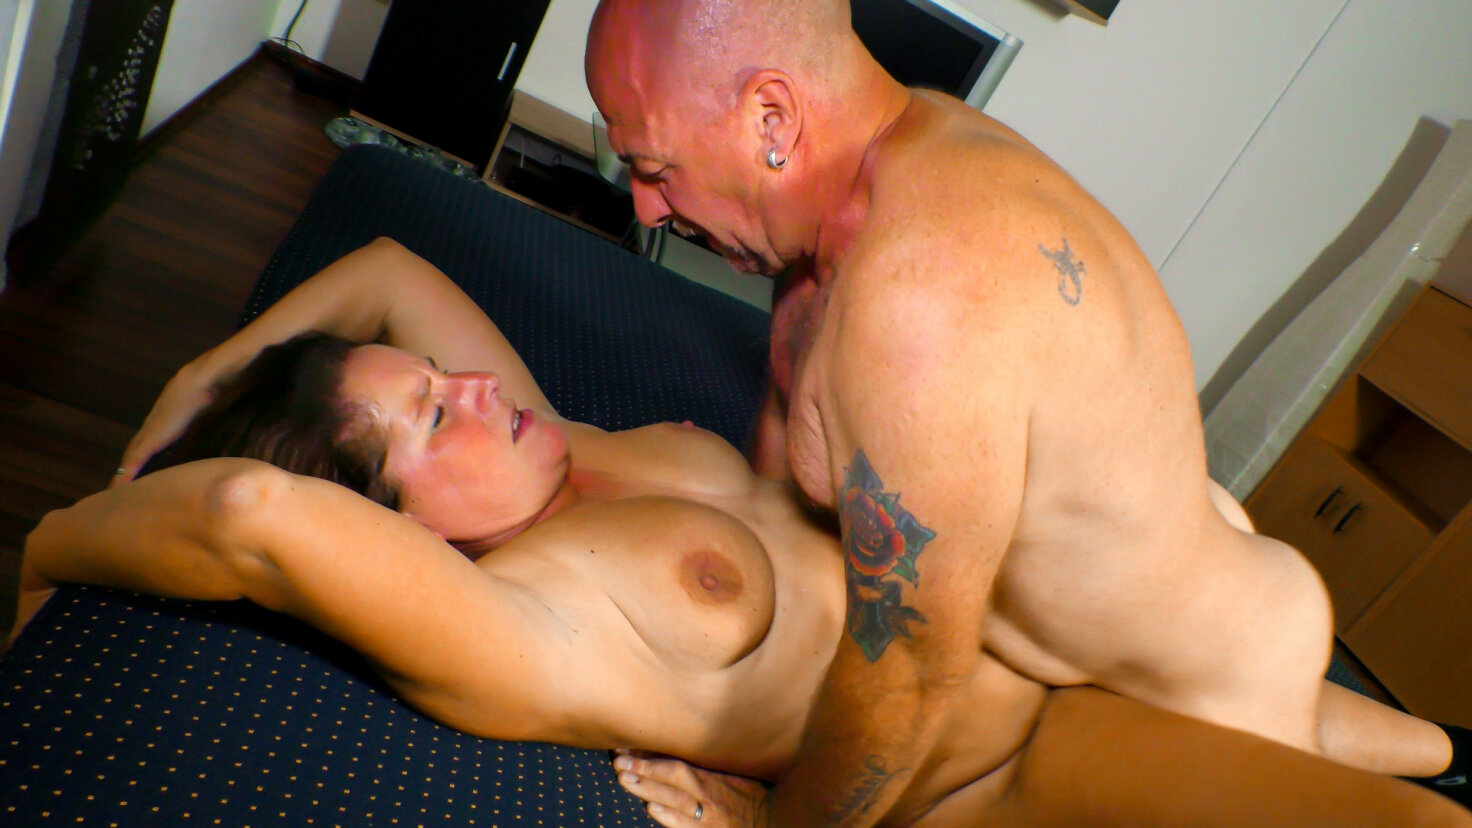 Mature German chick gets cum covered in steamy amateur hard fuck